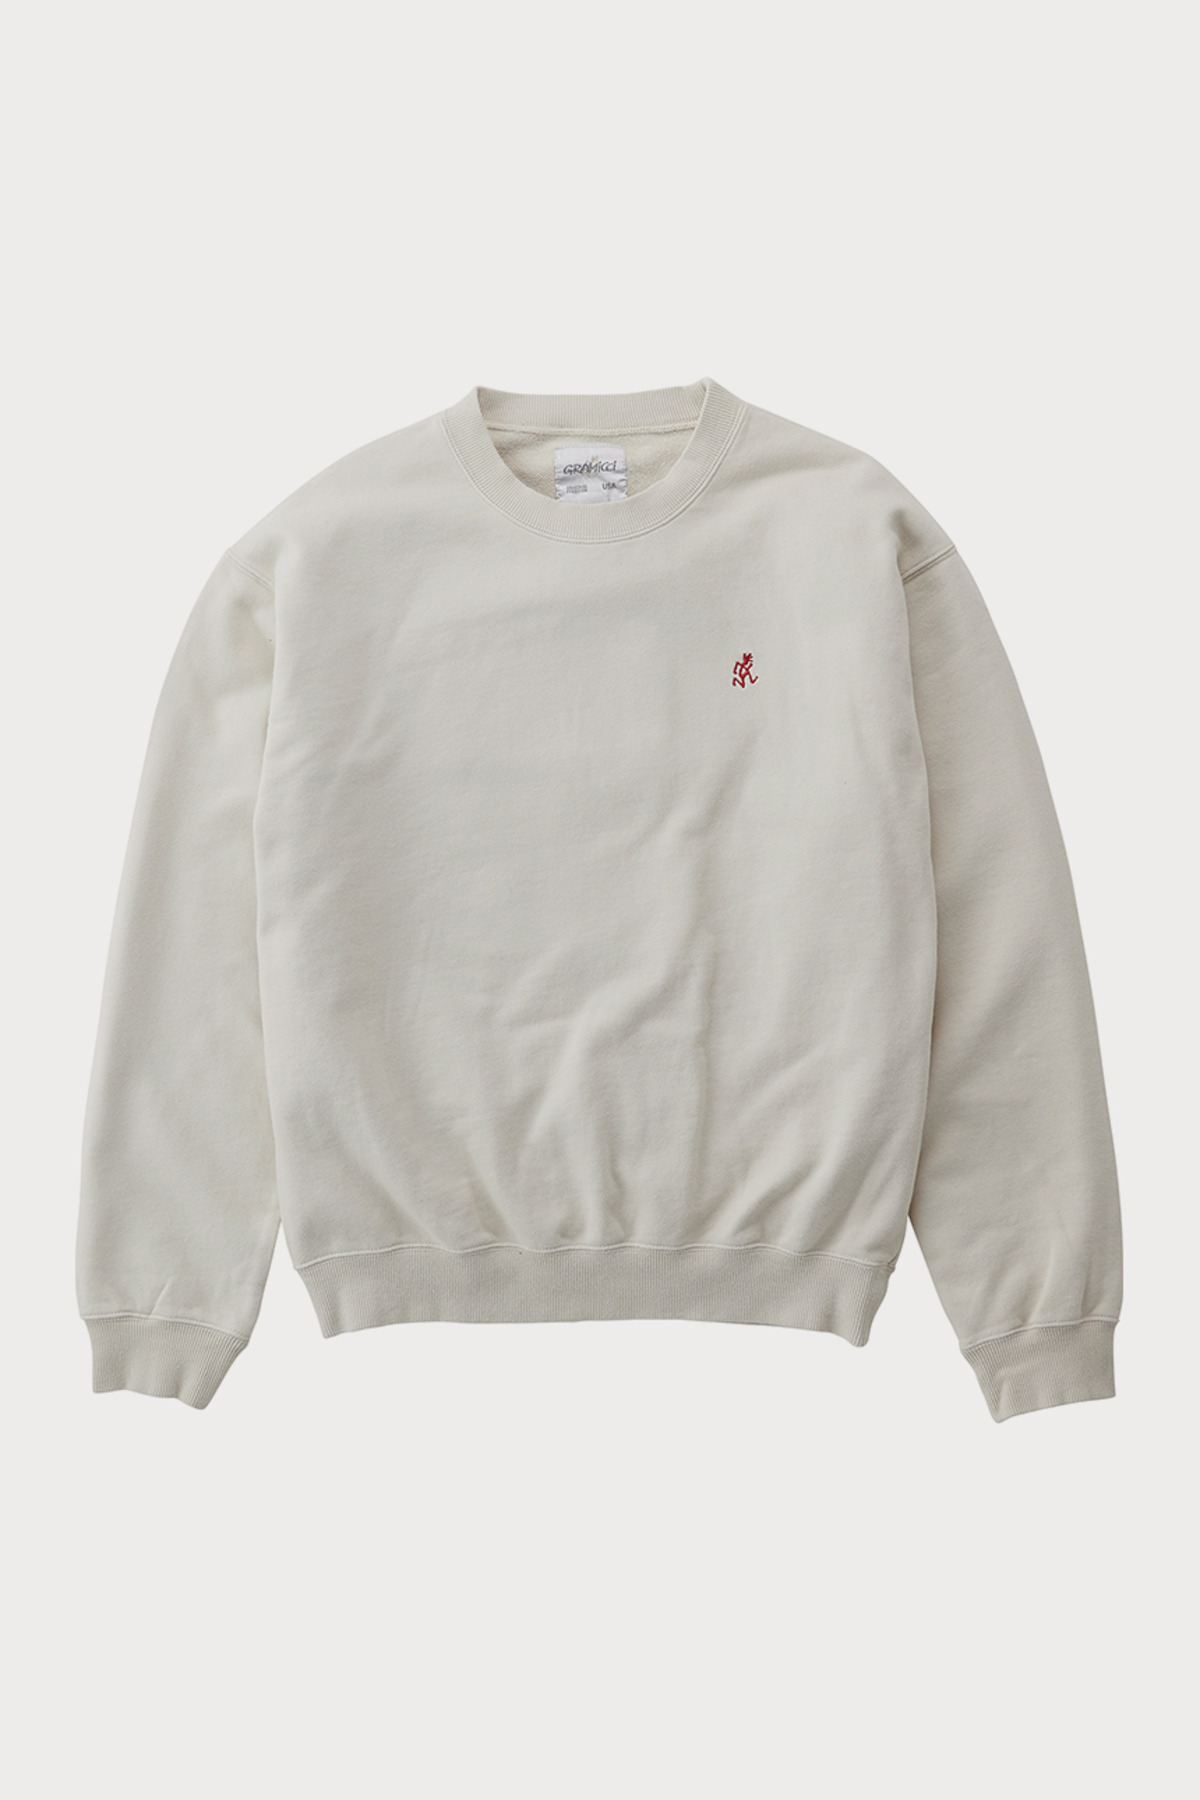 SWEAT SHIRTS SAND BEIGE